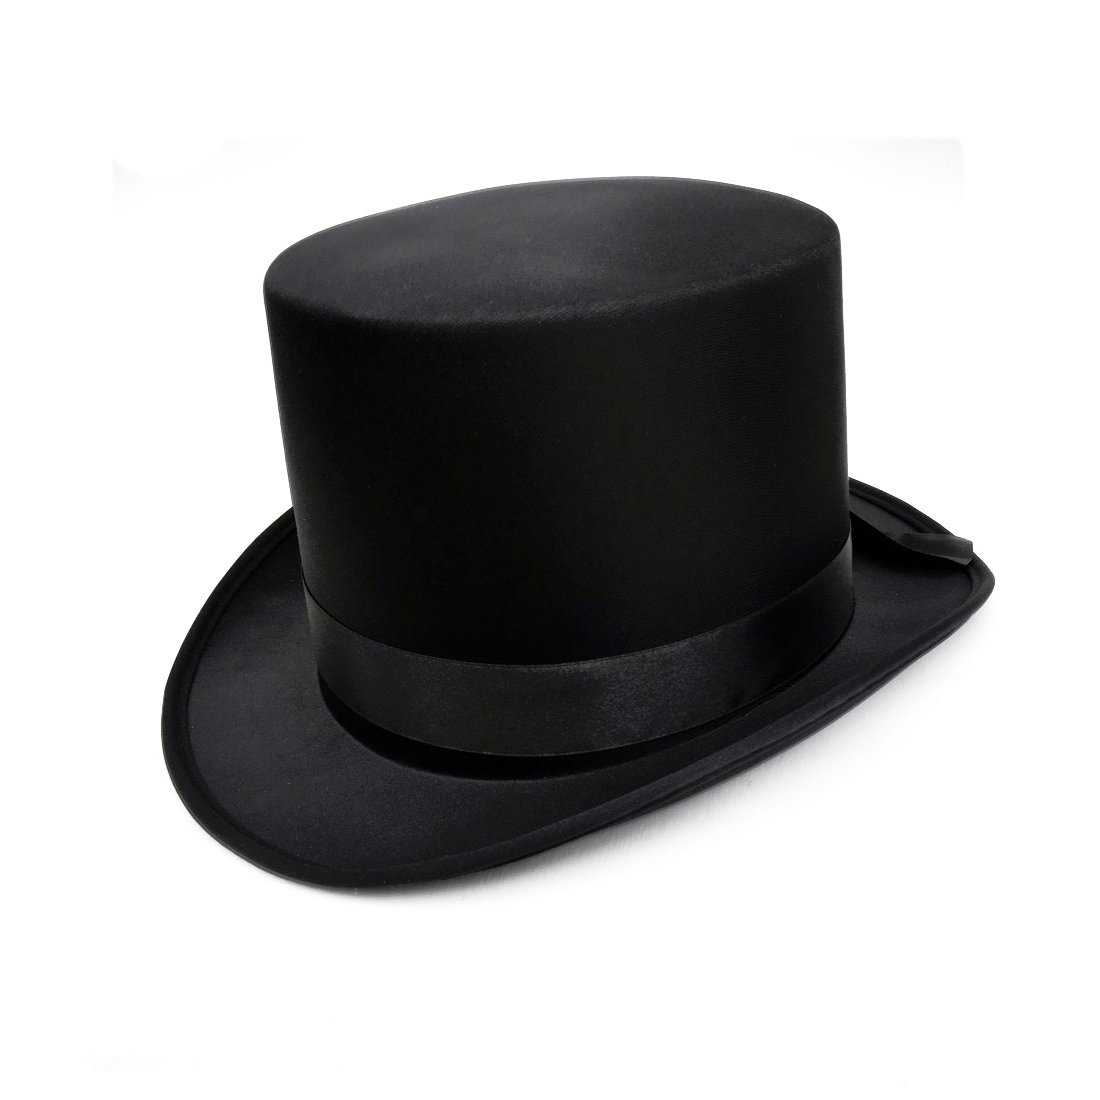 83ae209536b Fantastic Black Top Hat Great Quality Hard Satin Look Hat approx 59cm   creative collection  Amazon.co.uk  Toys   Games